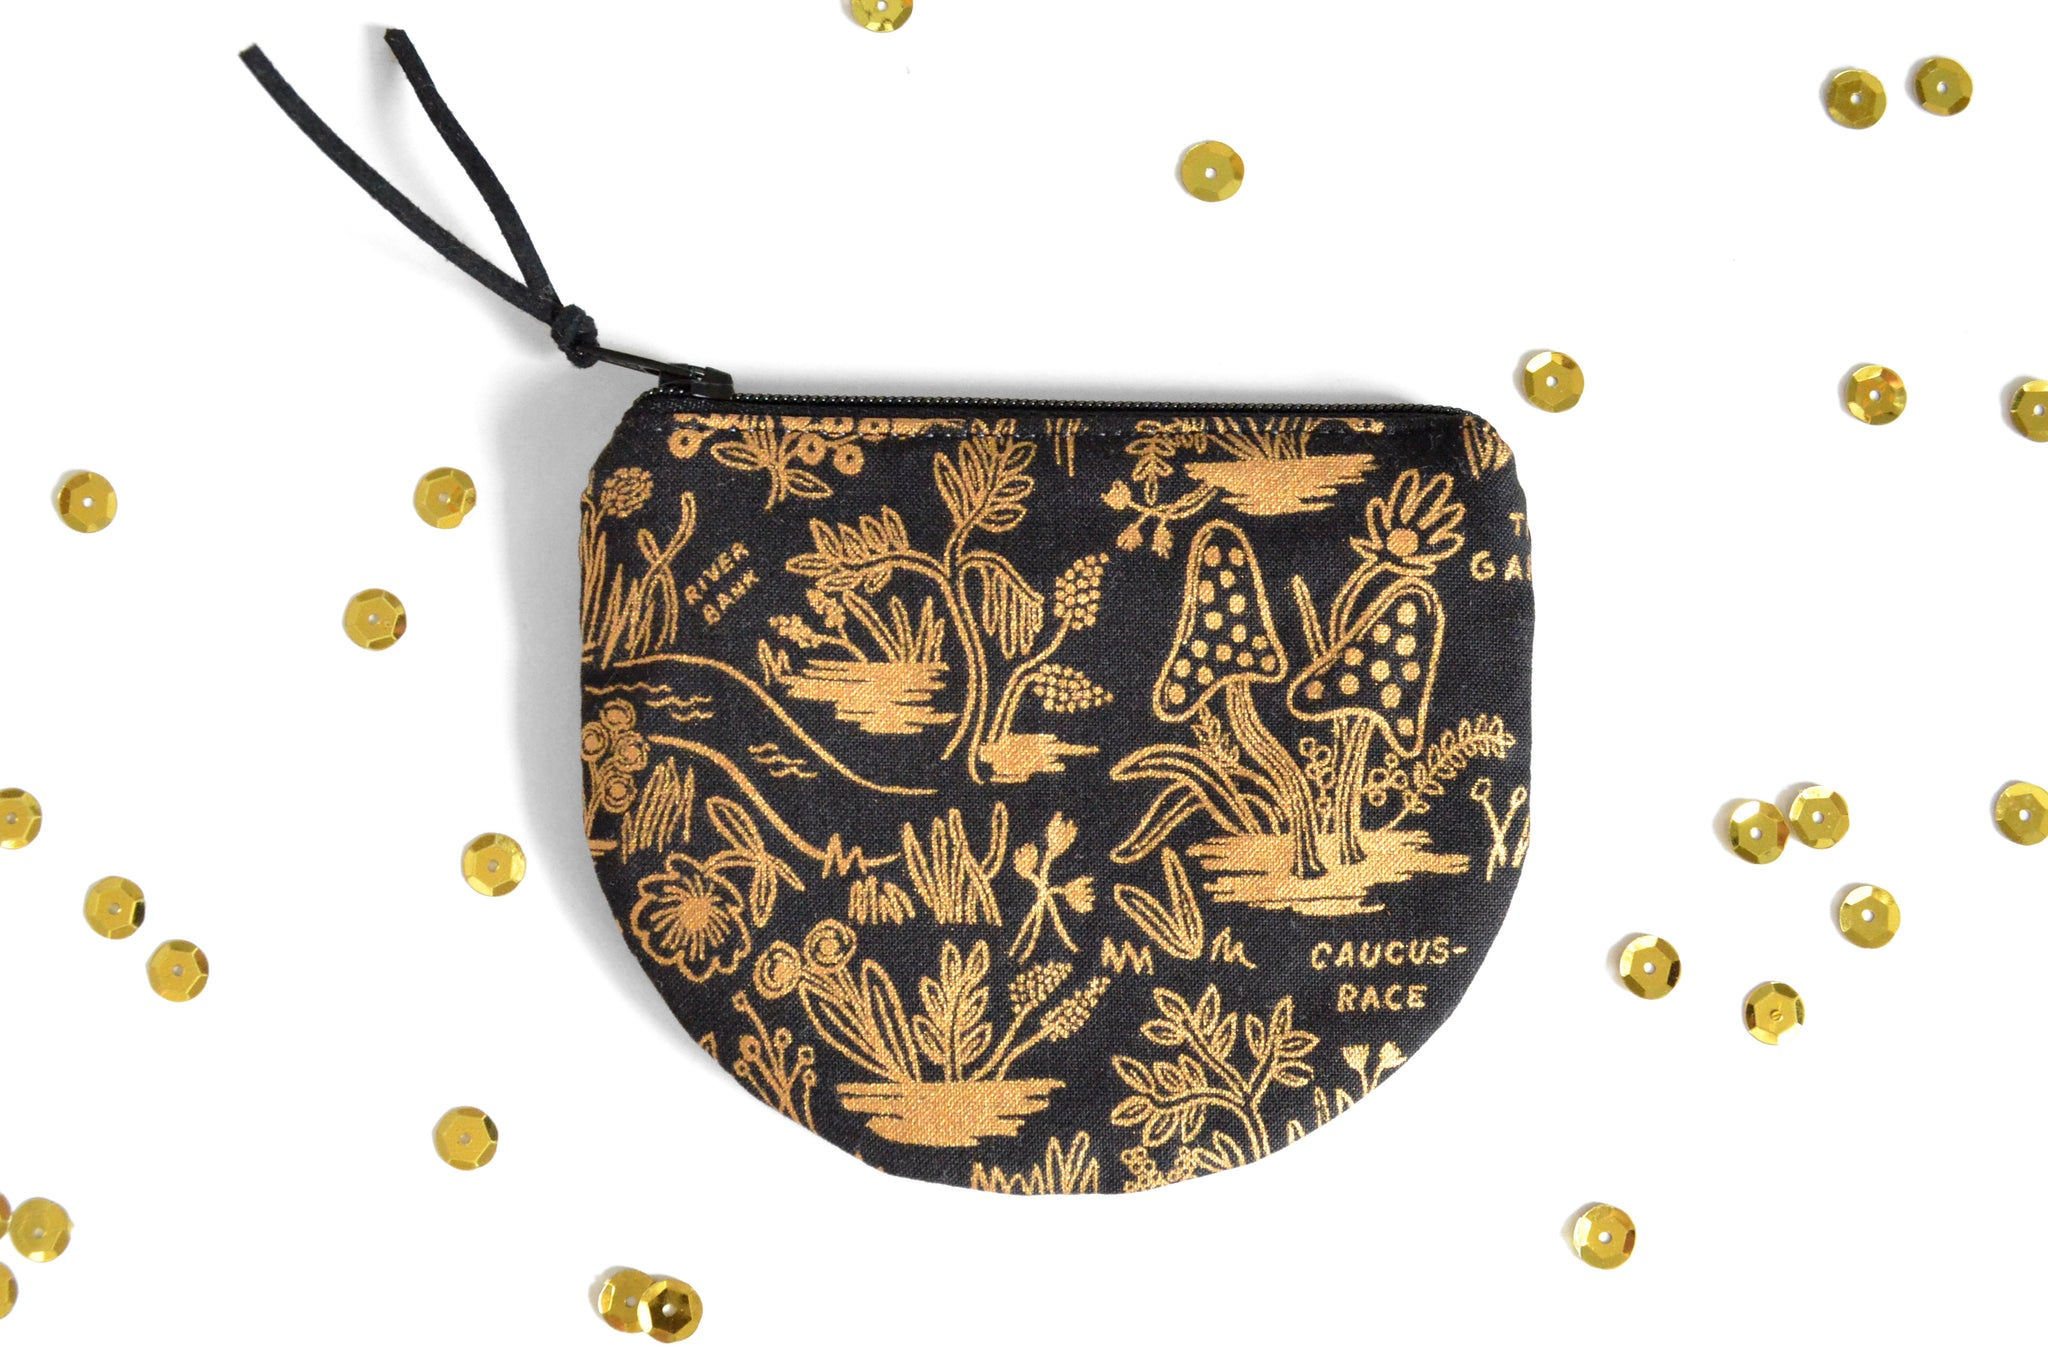 Black & Gold Alice in Wonderland Round Coin Purse